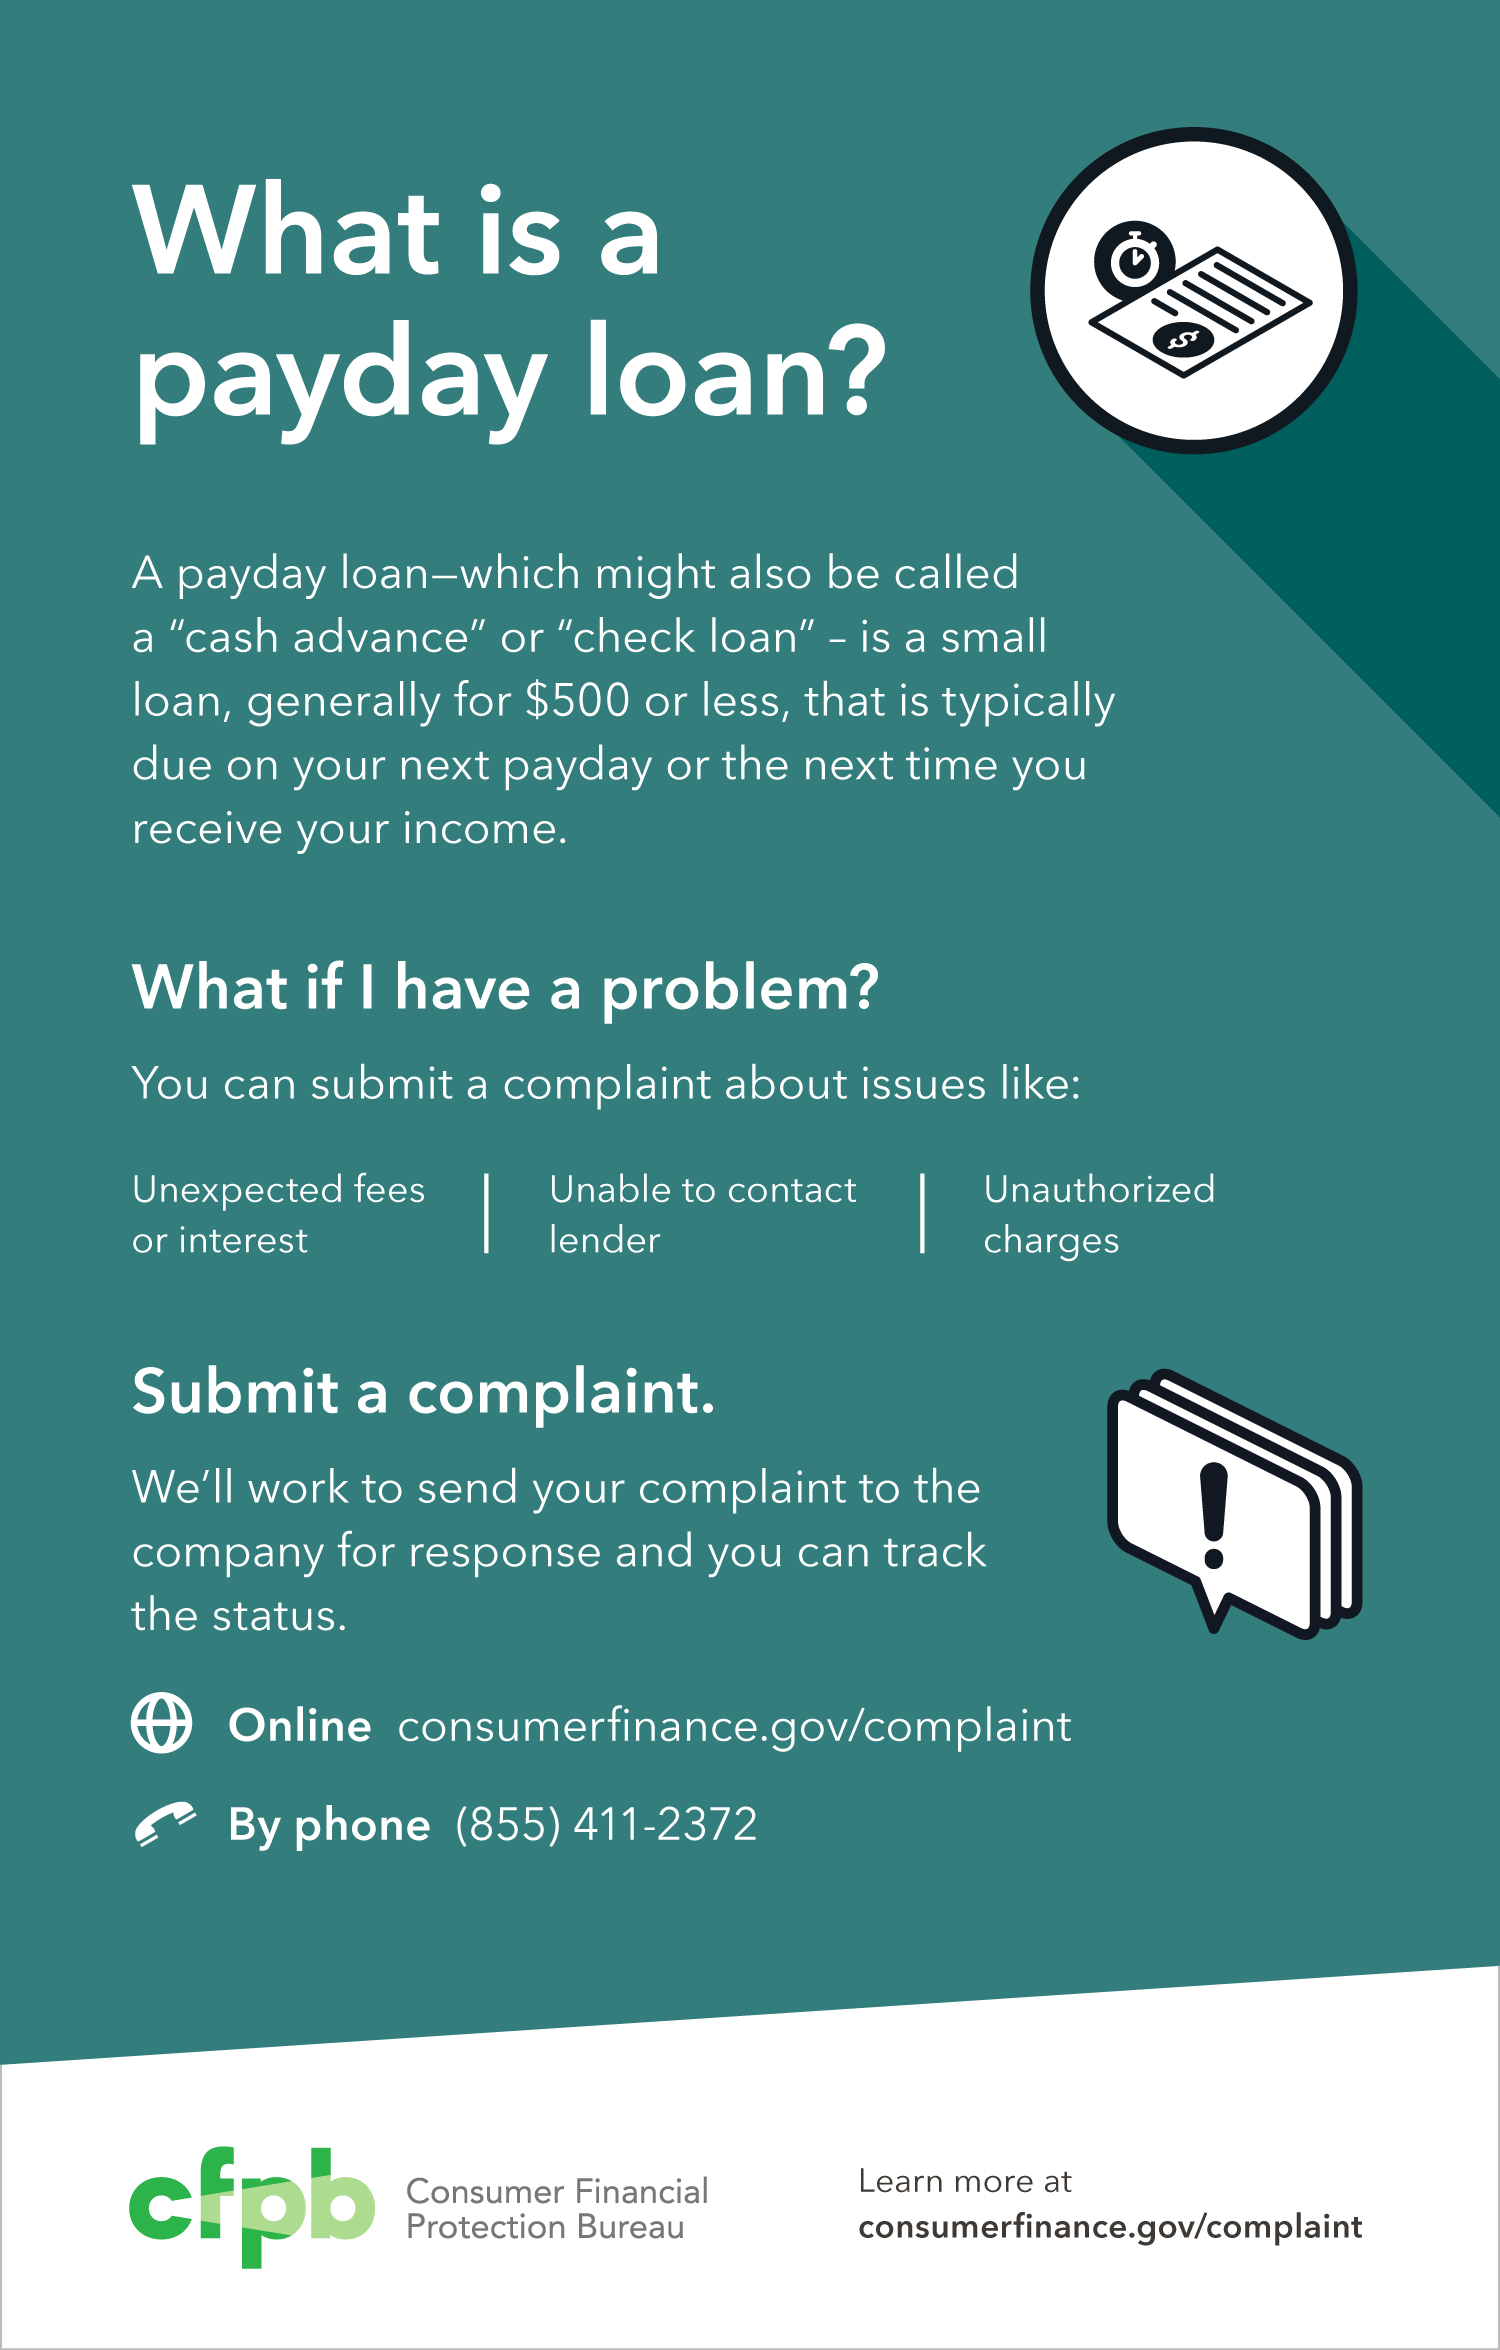 A payday loan – which might also be called a cash advance or check loan – is a short-term loan, generally $500 or less, that is typically due on your next payday. If you see some of these red flags – unexpected fees or interest, unable to contact lender, unauthorized charges – you should submit a complaint. Call 1-855-411-CFPB (2372).